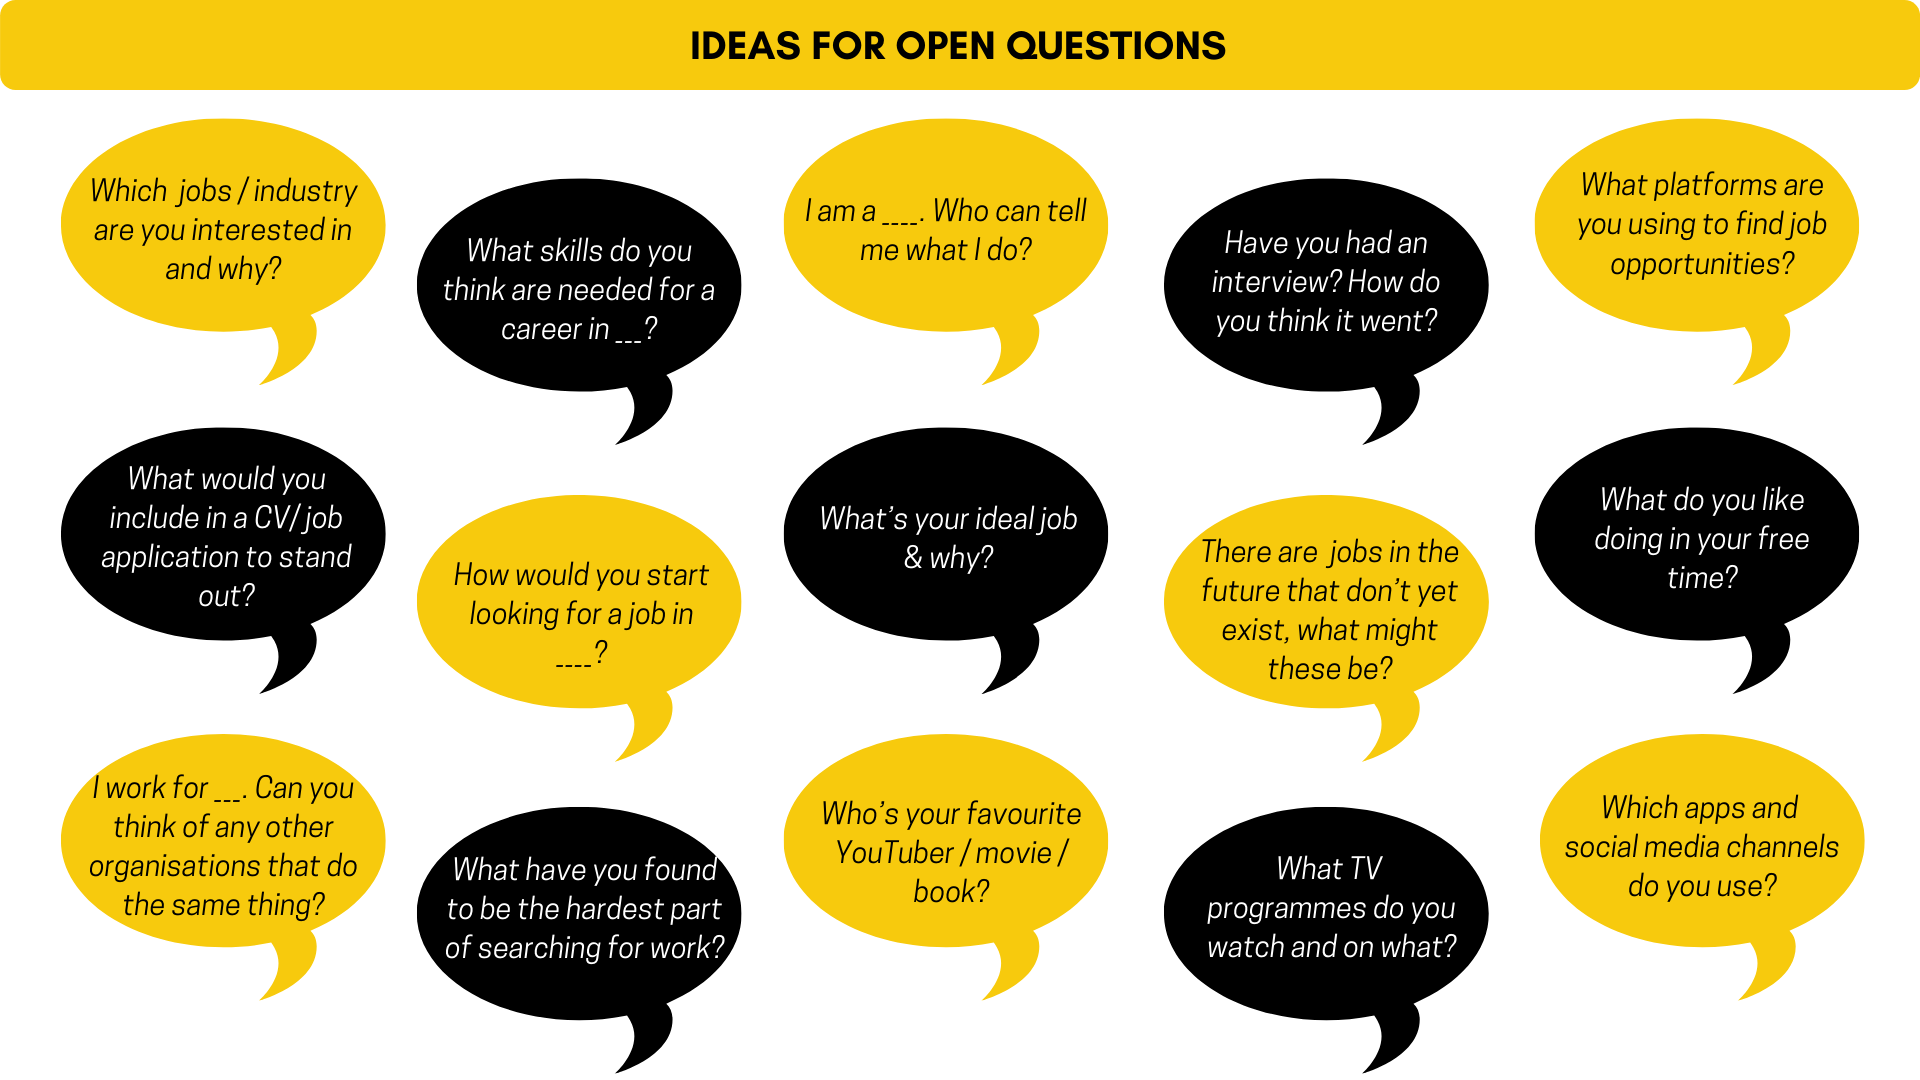 ideas for open questions